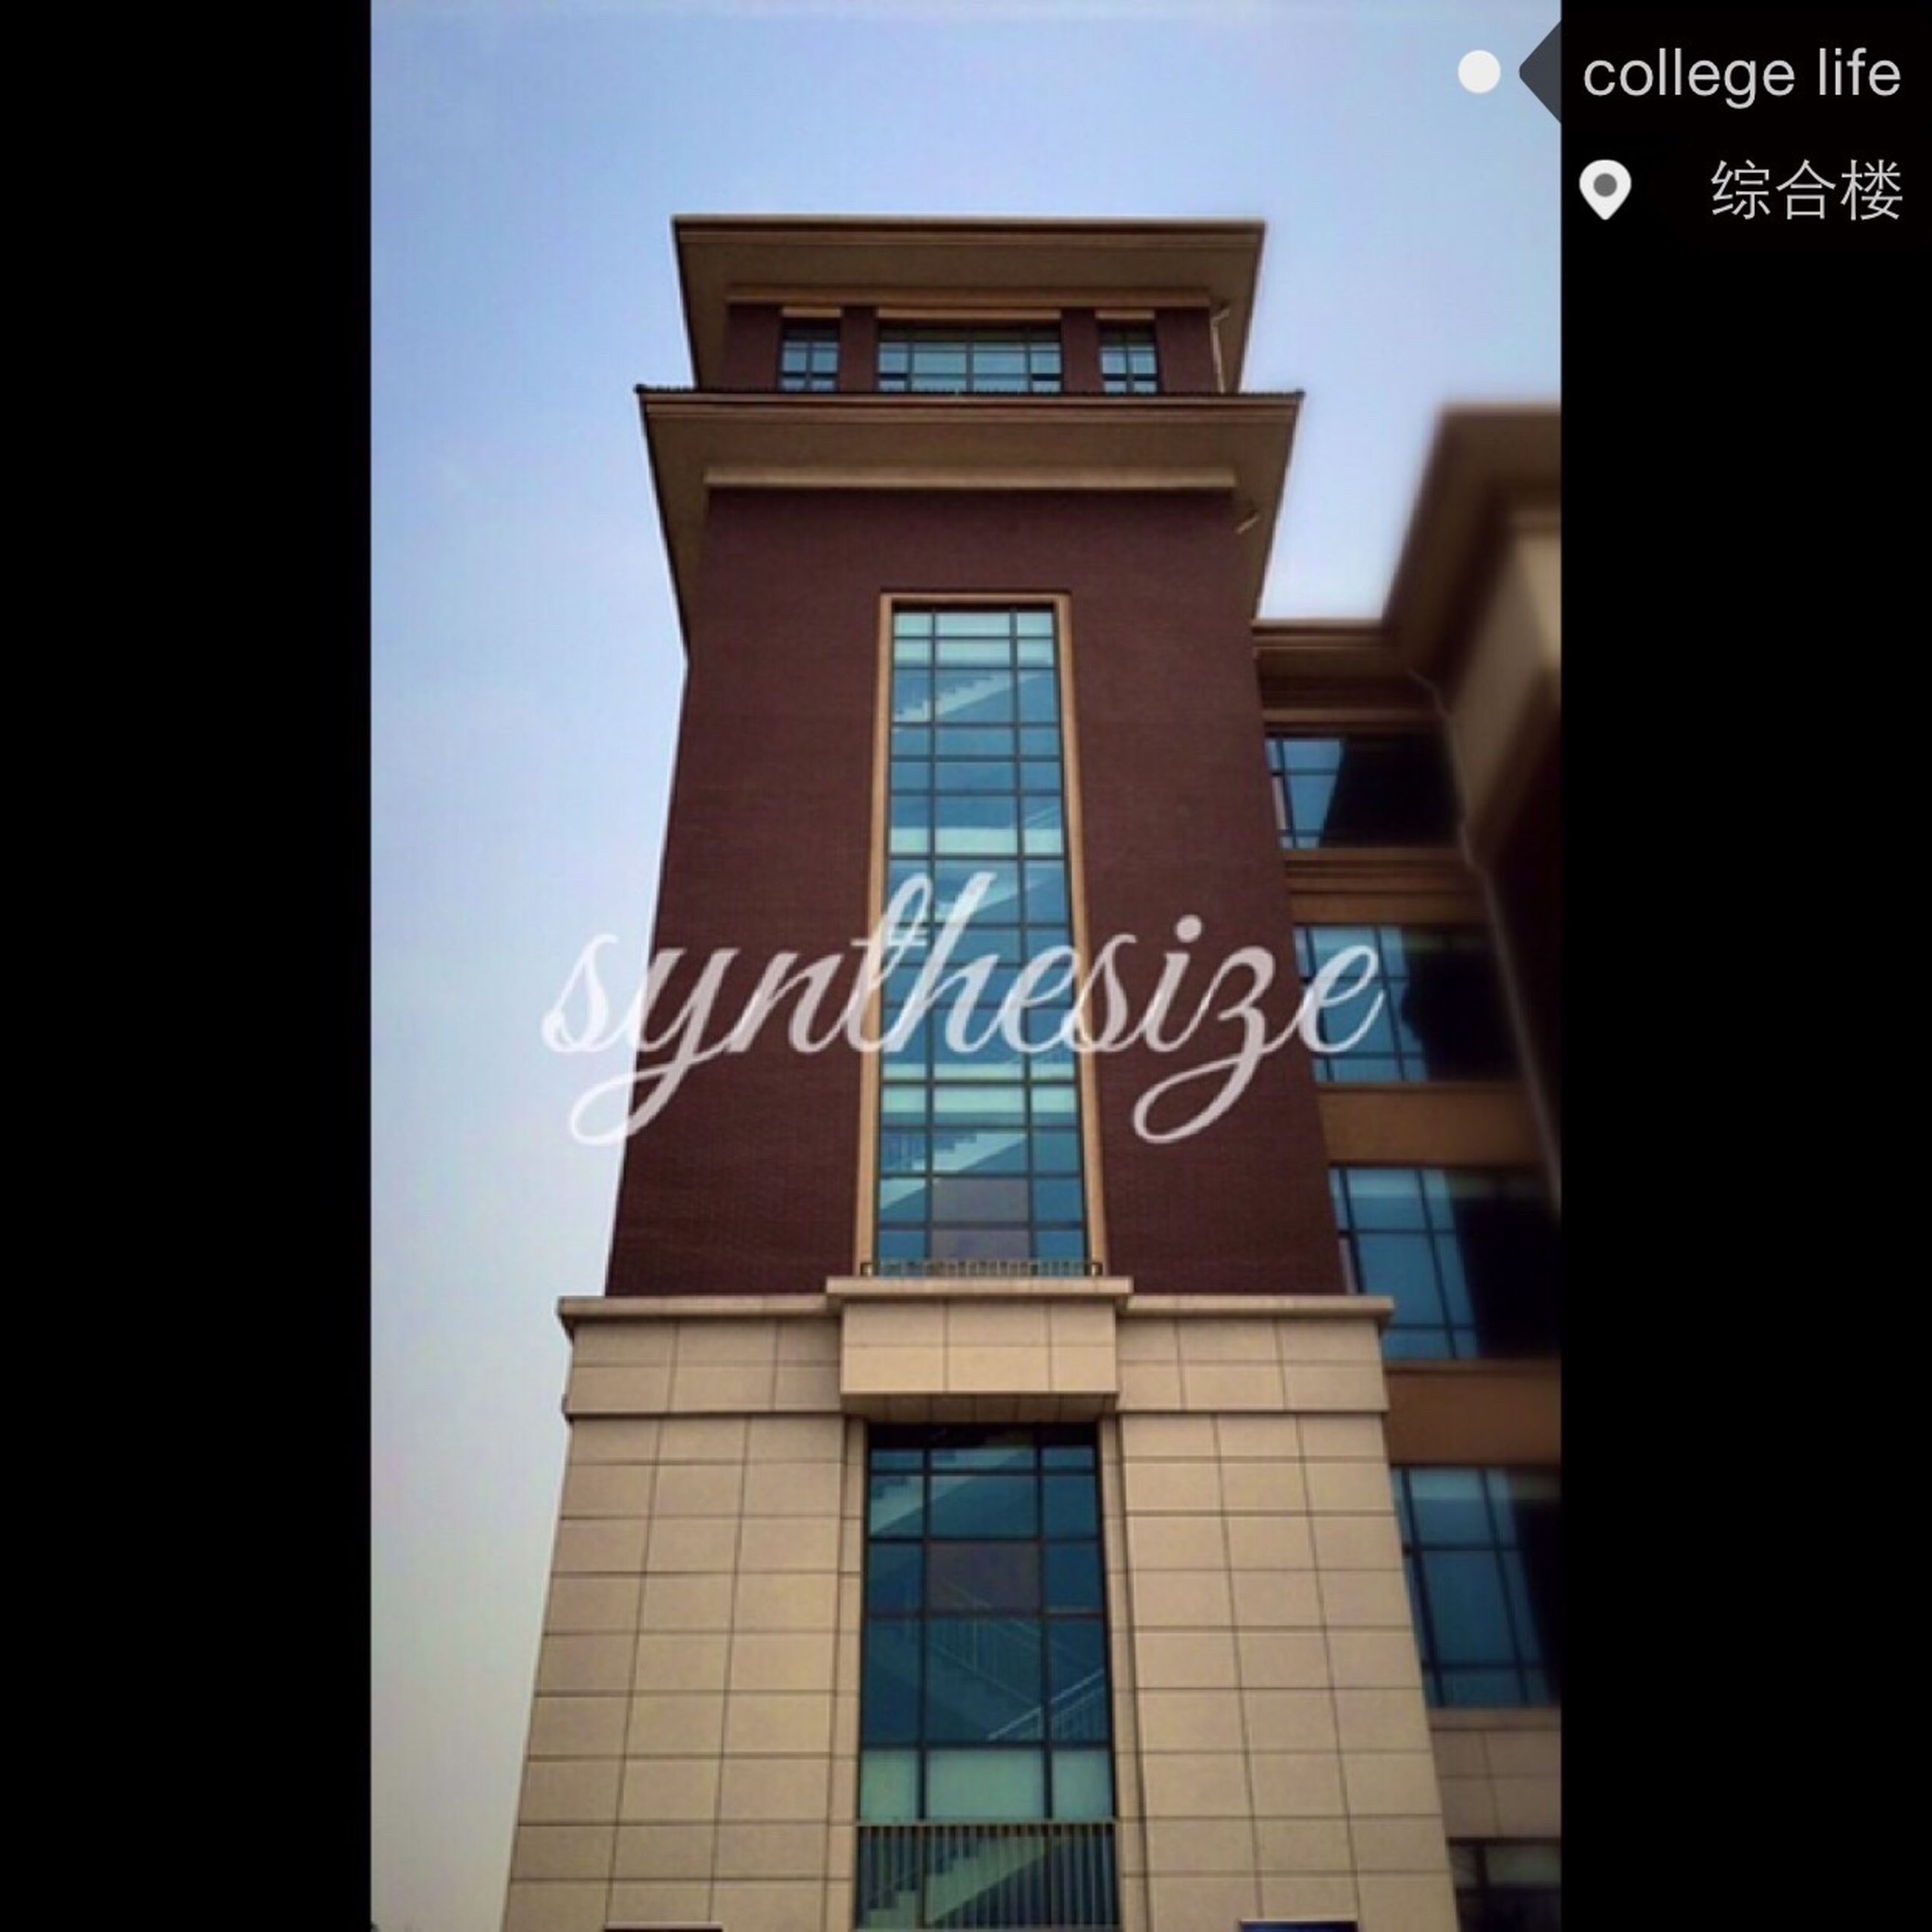 architecture, built structure, text, building exterior, low angle view, western script, communication, window, city, building, sky, capital letter, sign, modern, no people, information sign, non-western script, guidance, day, information